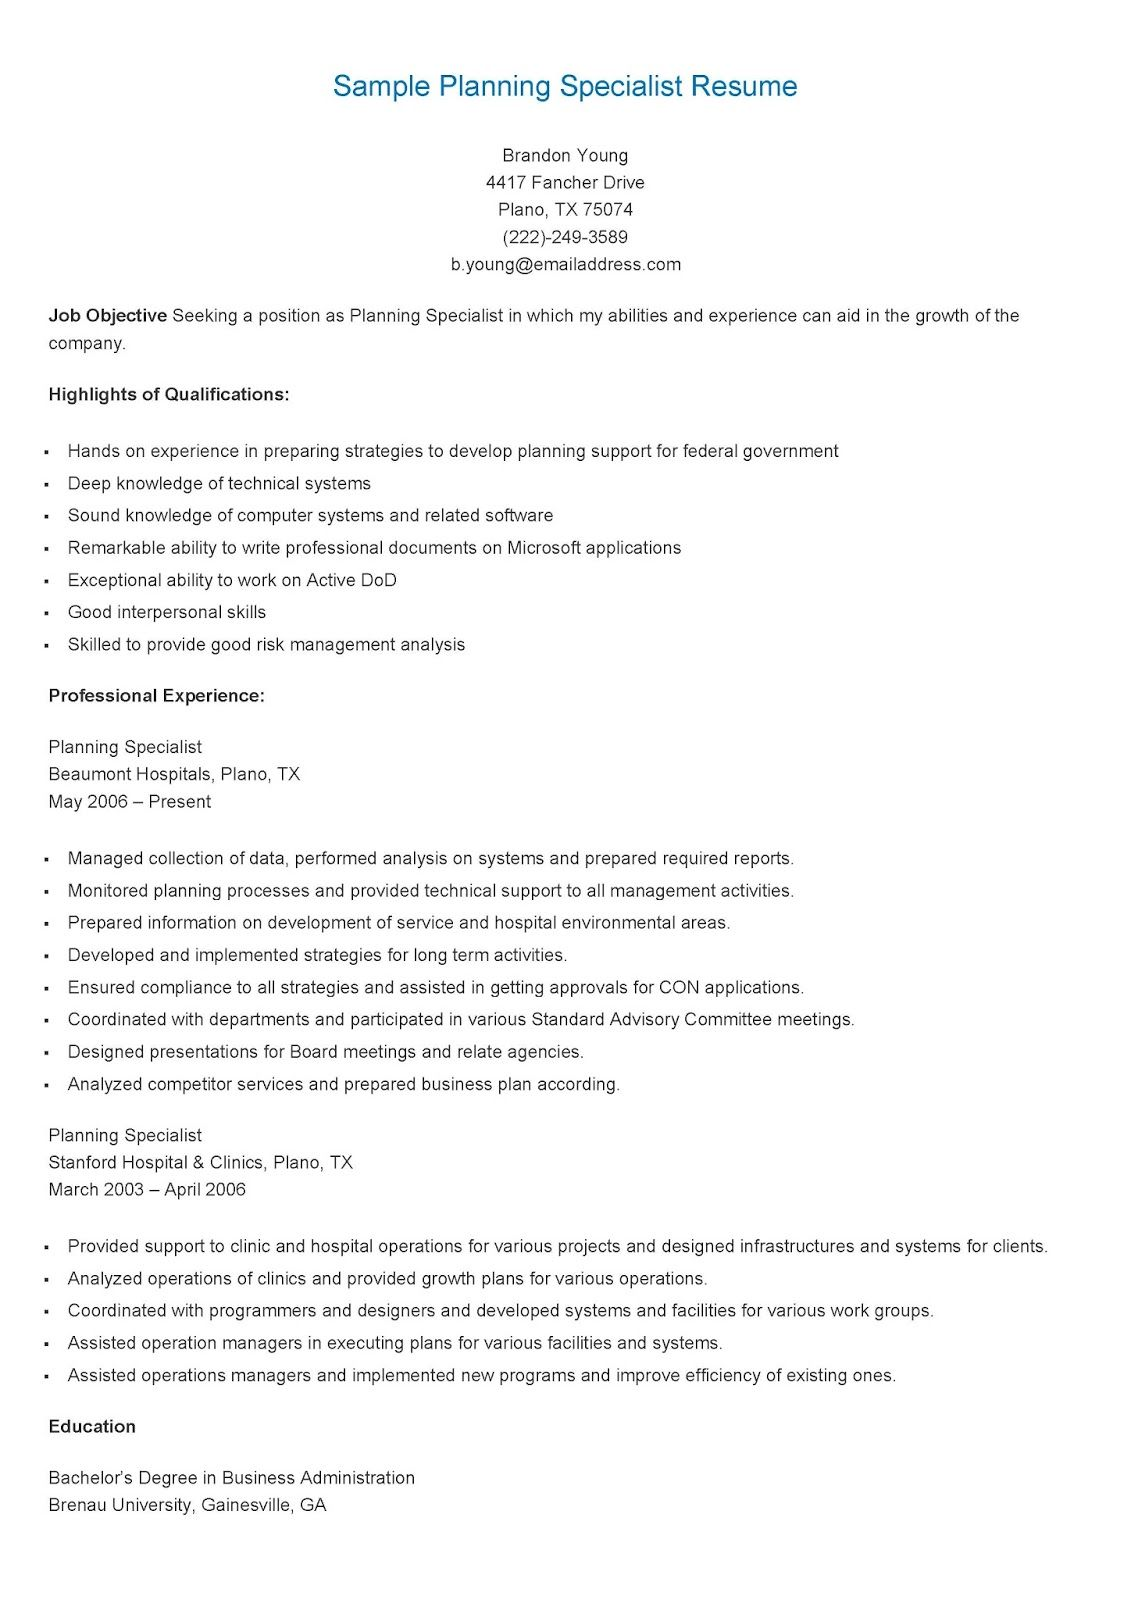 Sample Planning Specialist Resume | resame | Resume